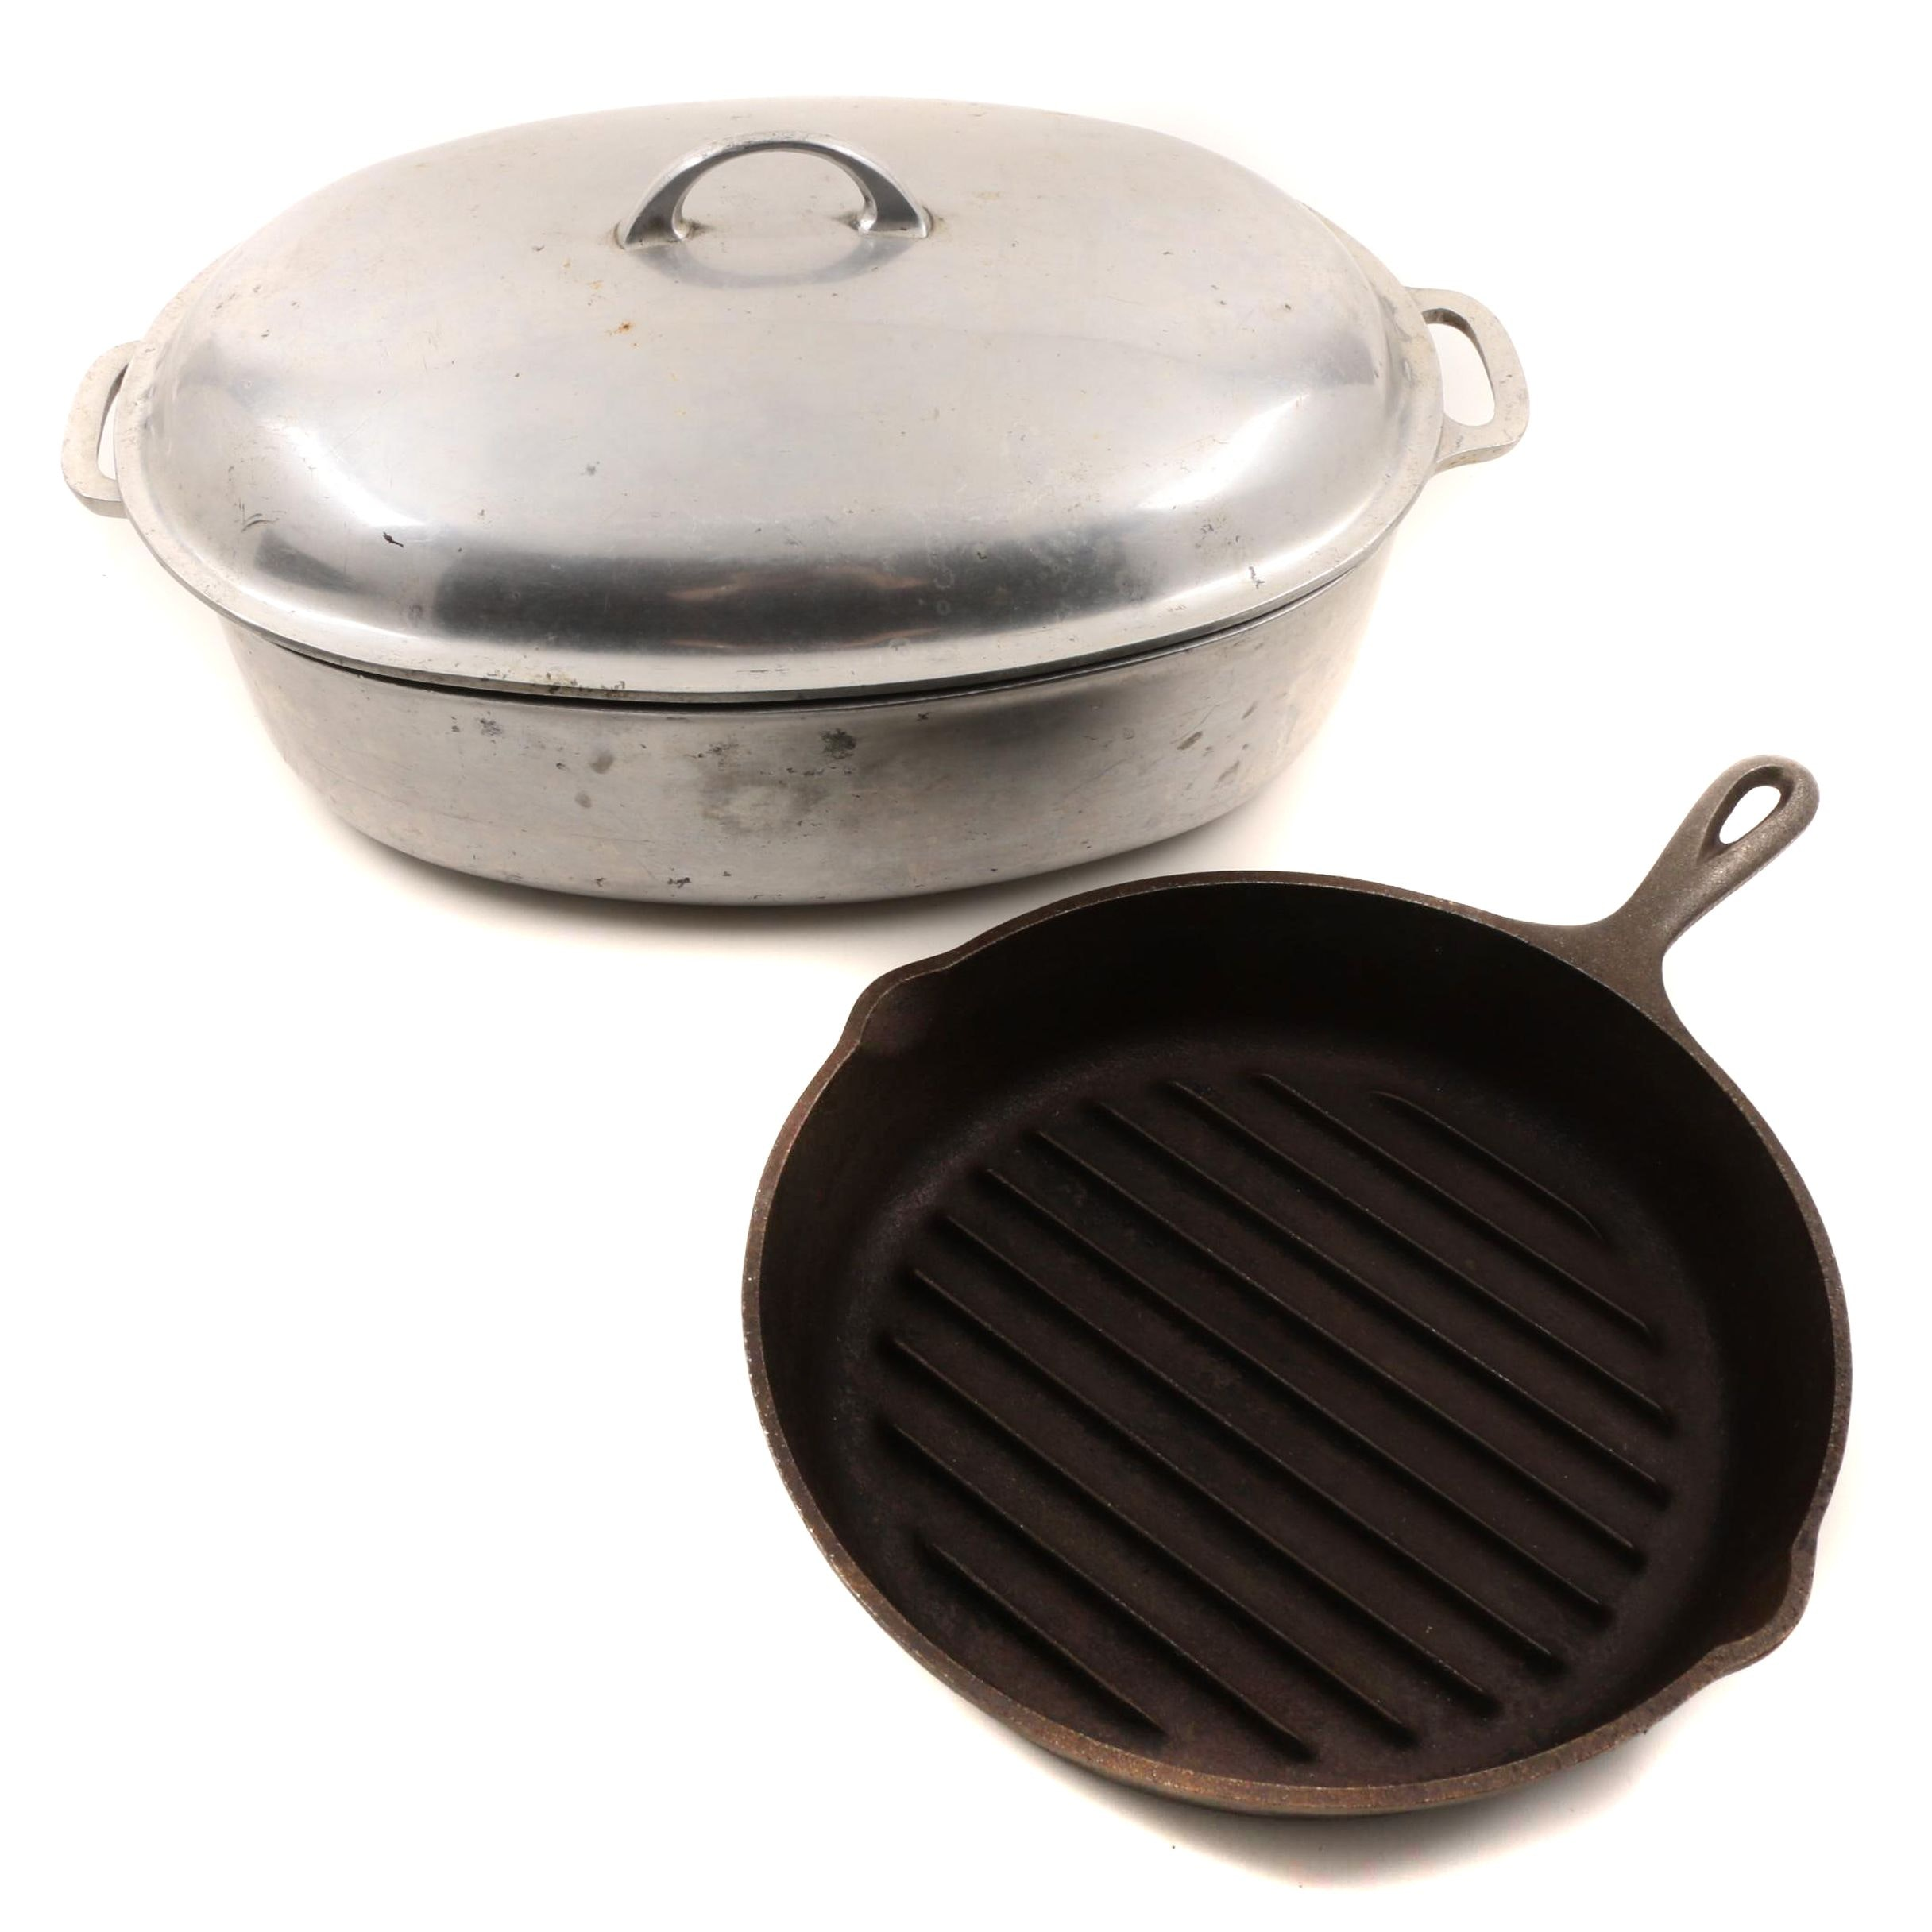 Griswold Oval Roasting Pan with Lid and Lodge Cast Iron Skillet